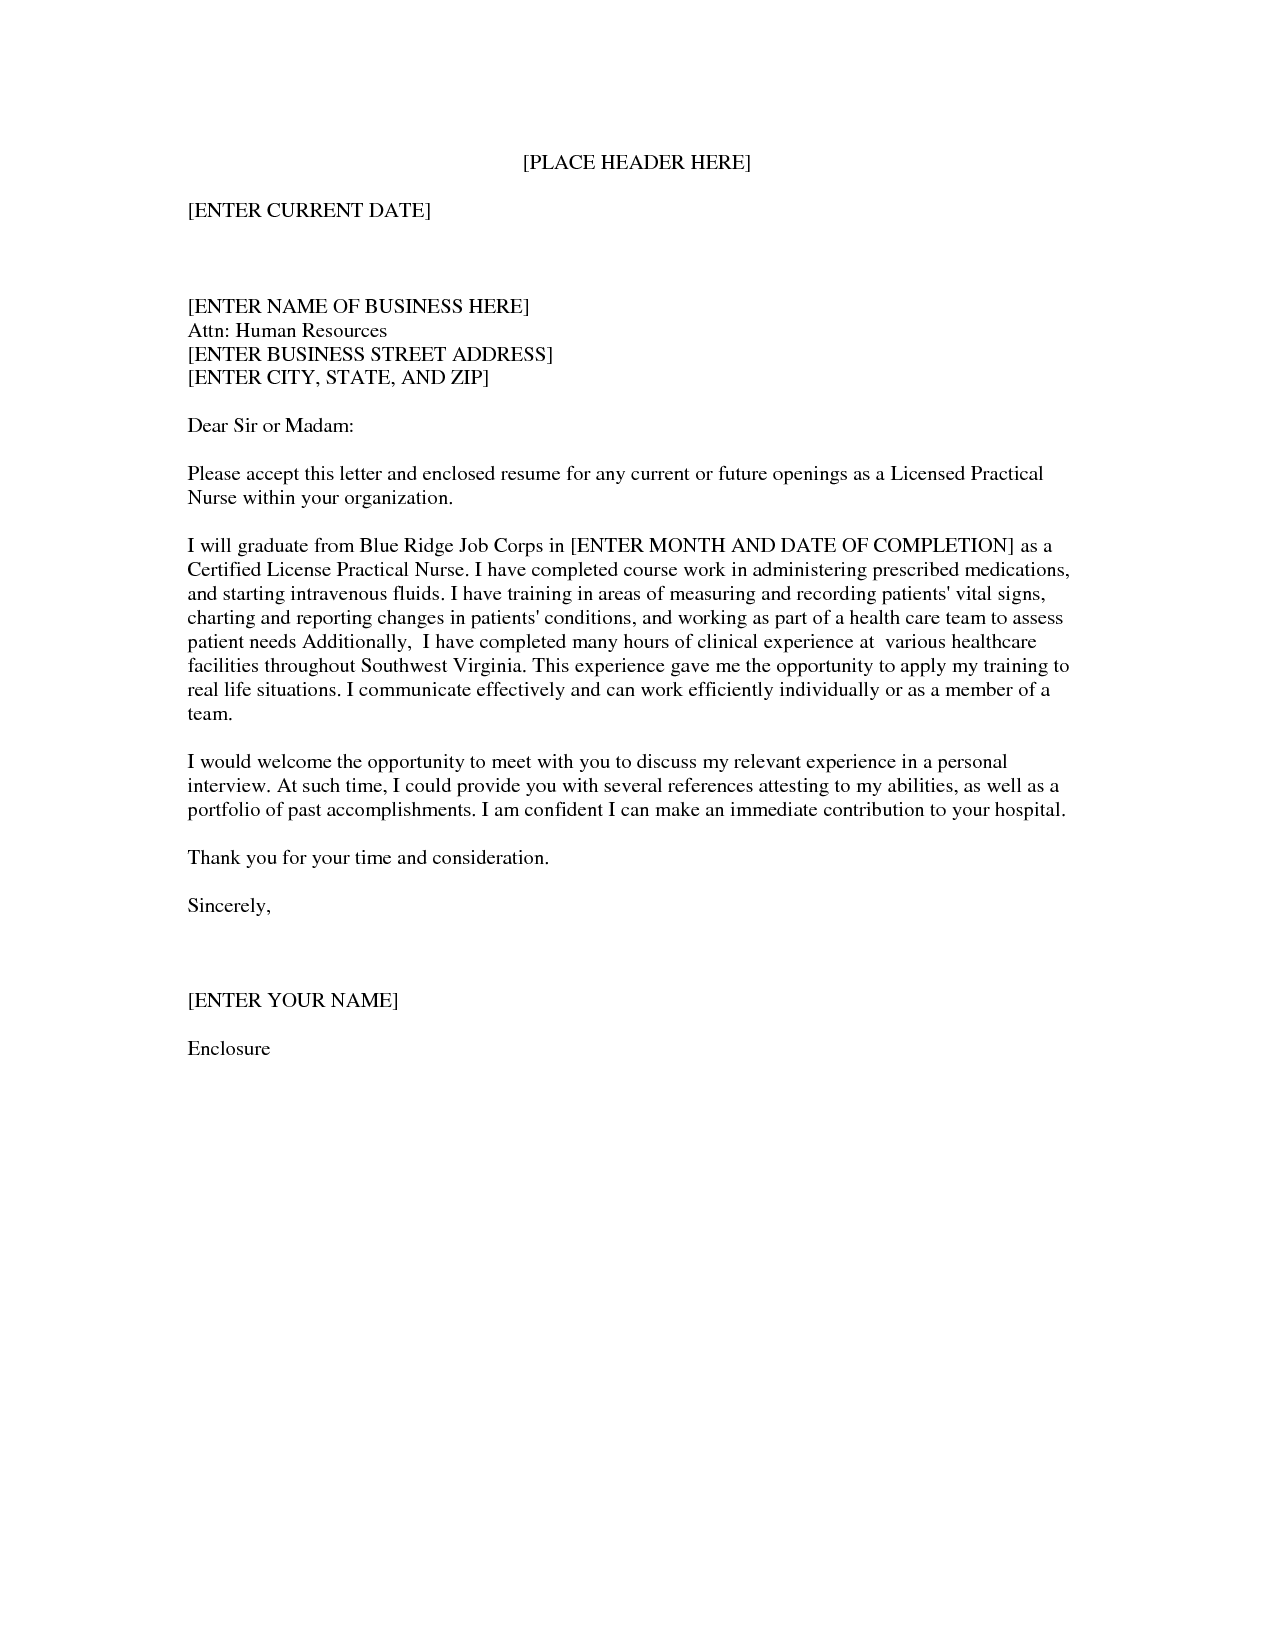 sample cover letter for lpn position lpn nursing cover letter sample nursing school